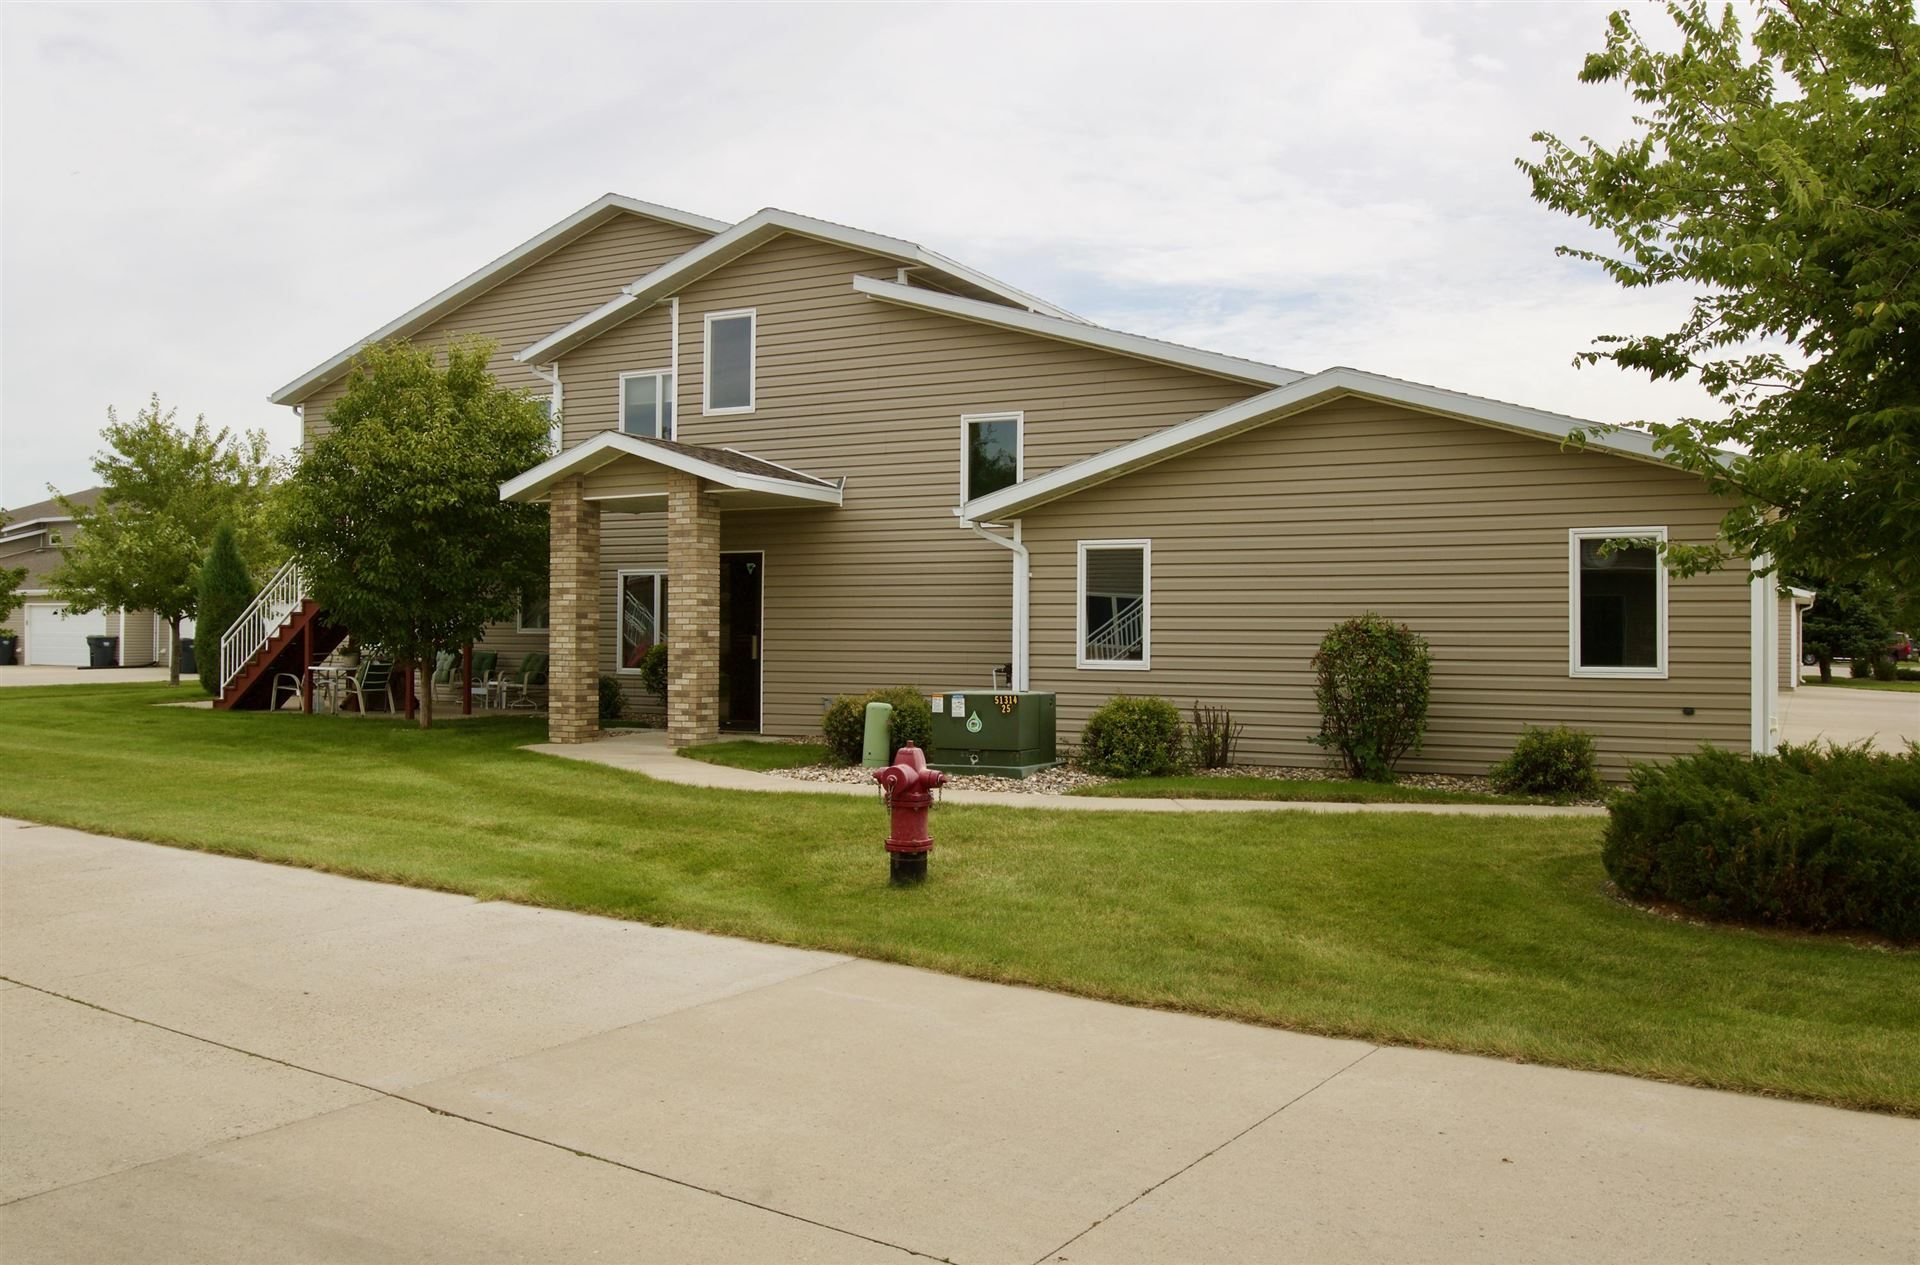 2100 Sundancer Loop SE #5, Mandan, ND 58554 - #: 408657